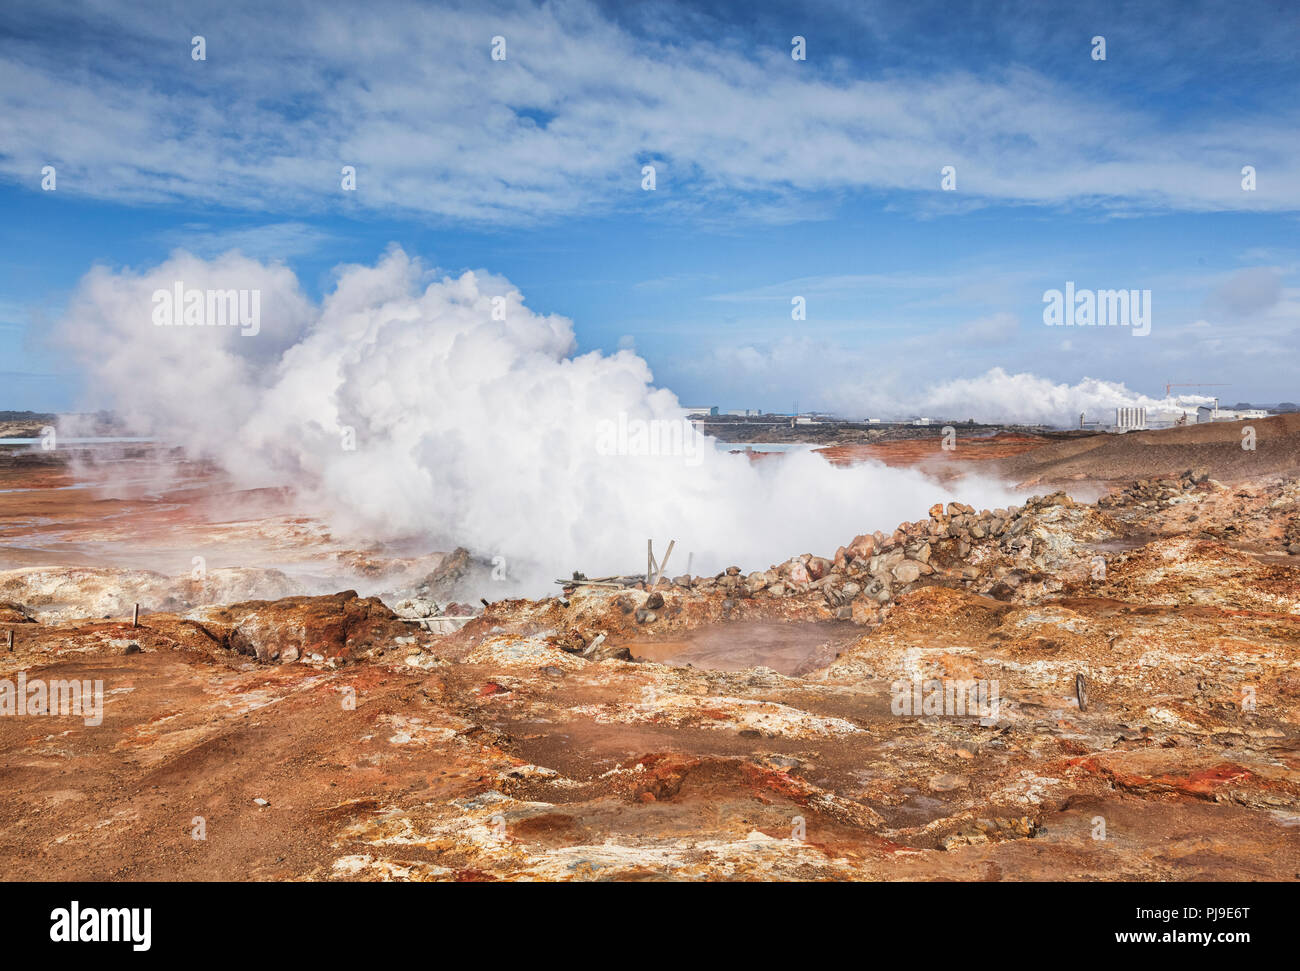 Gunnuhver Hot Springs and Reykjanes Geothermal Power Station, Reykjanes Peninsual, Iceland - Stock Image